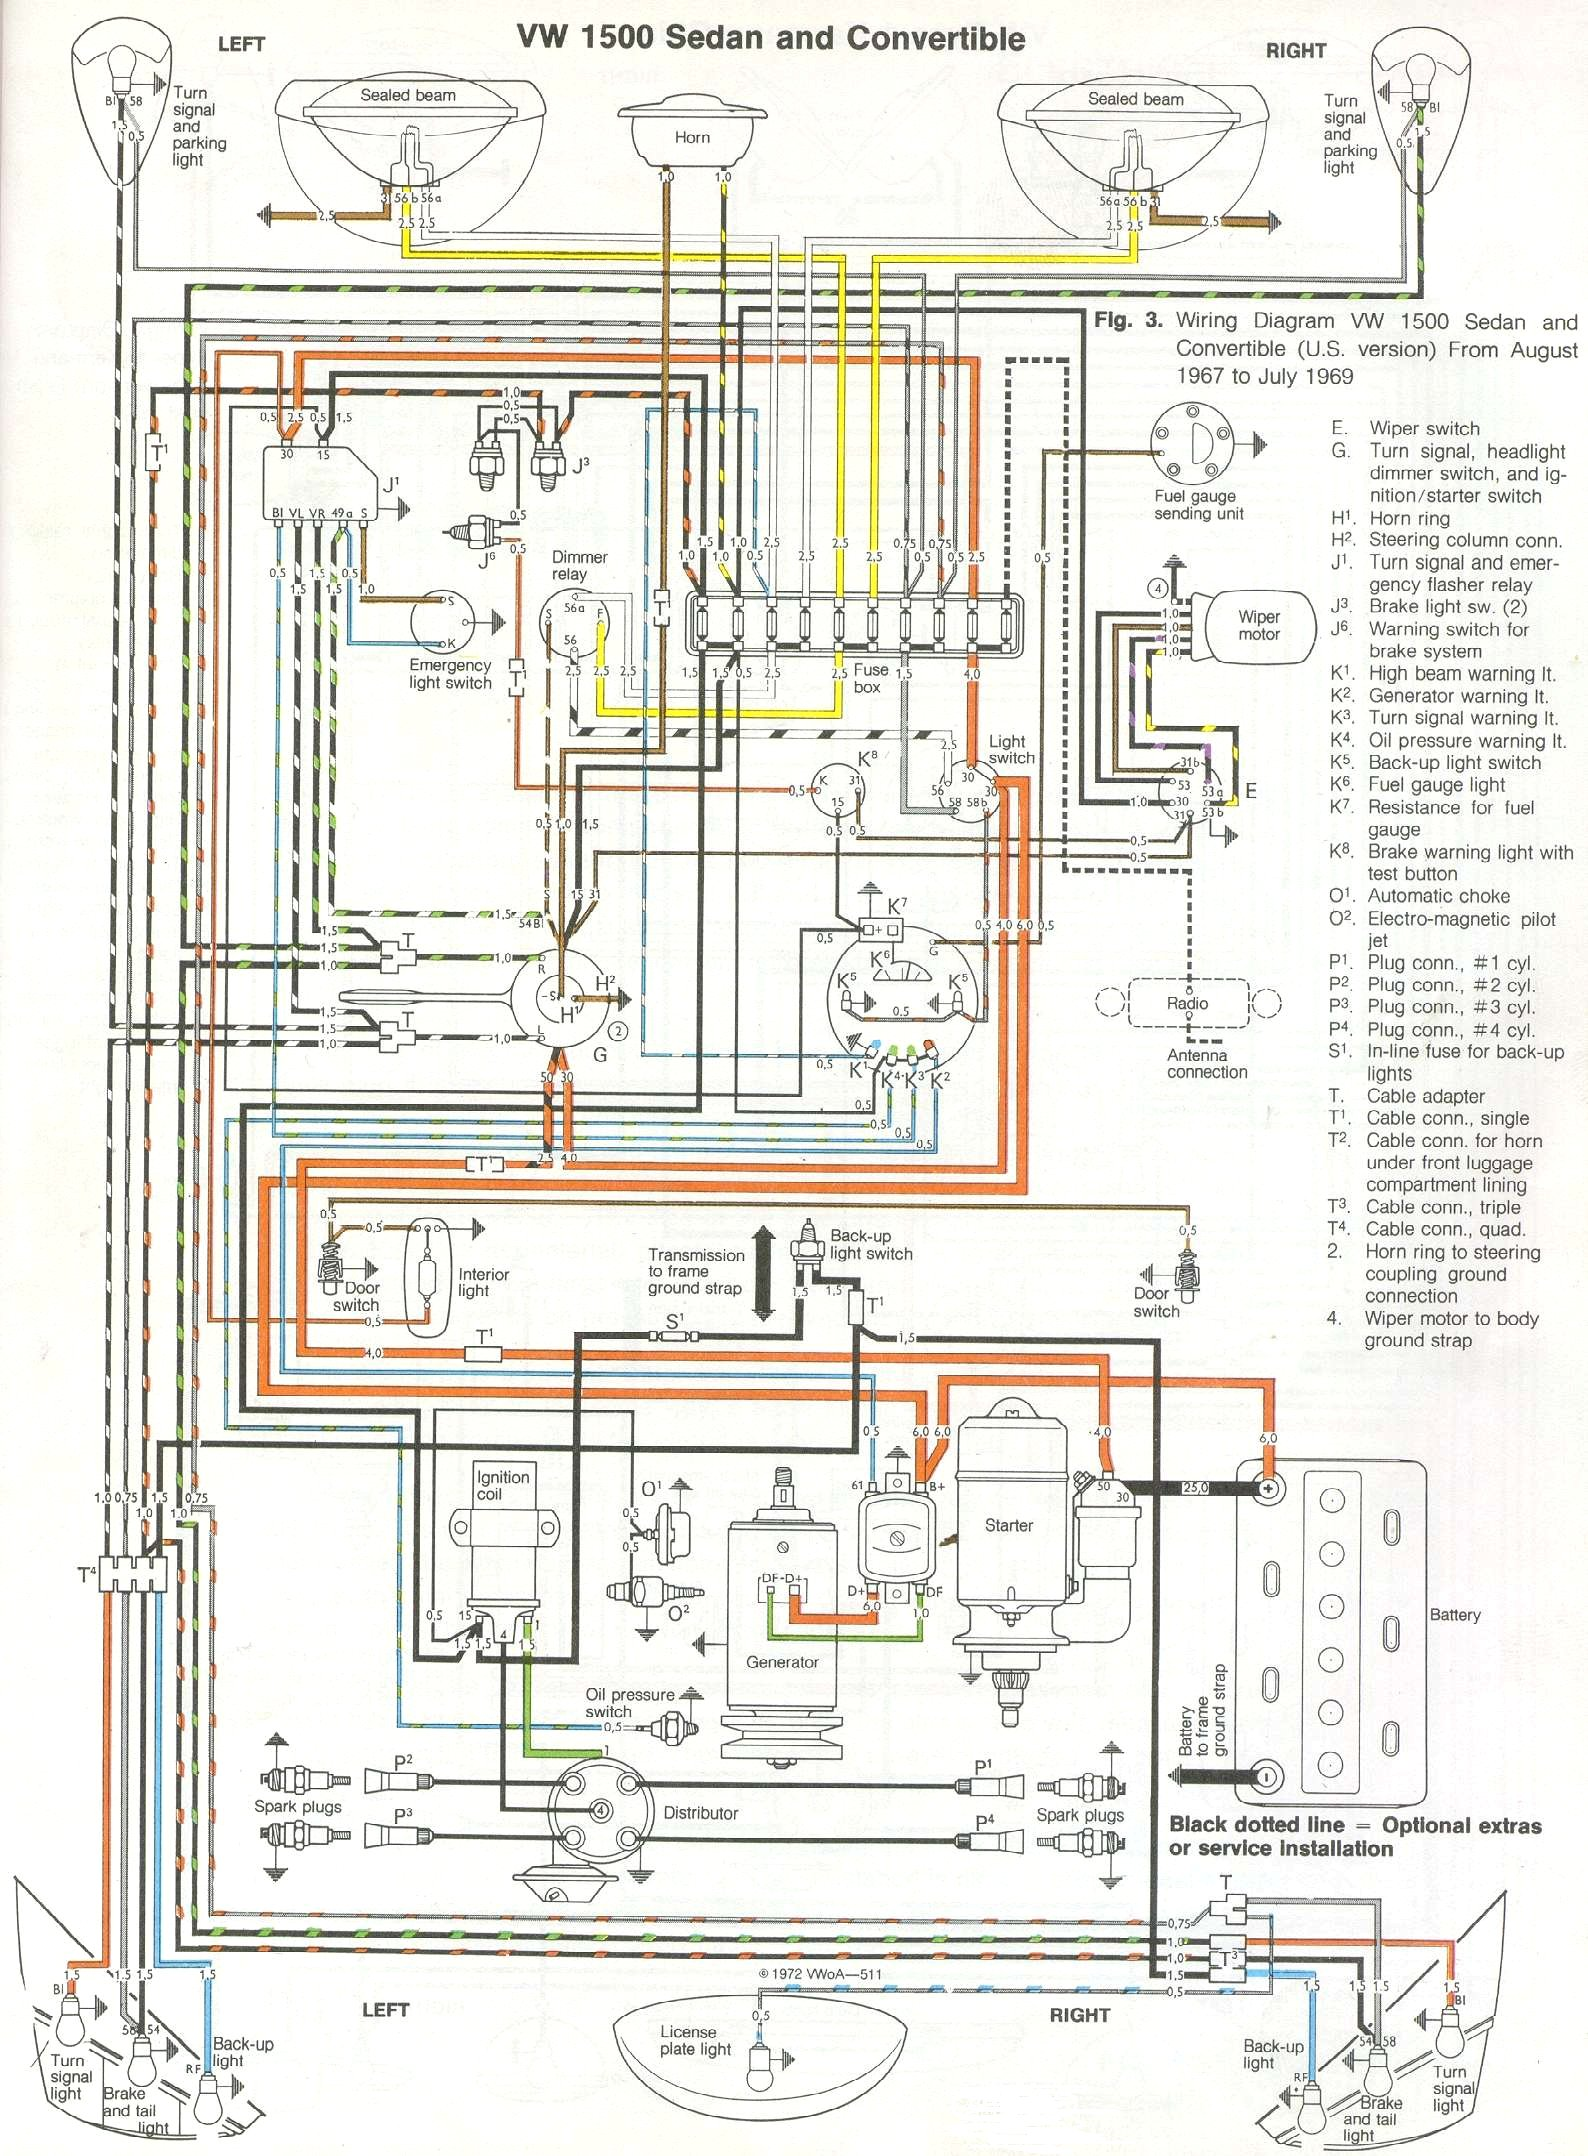 1969 71 beetle wiring diagram moreover Fuses And Relay Renault Clio 2 also Pontiac Sunfire 2001 Fuse Box Diagram moreover Watch besides AS8e 5427. on ford fuel pump relay diagram